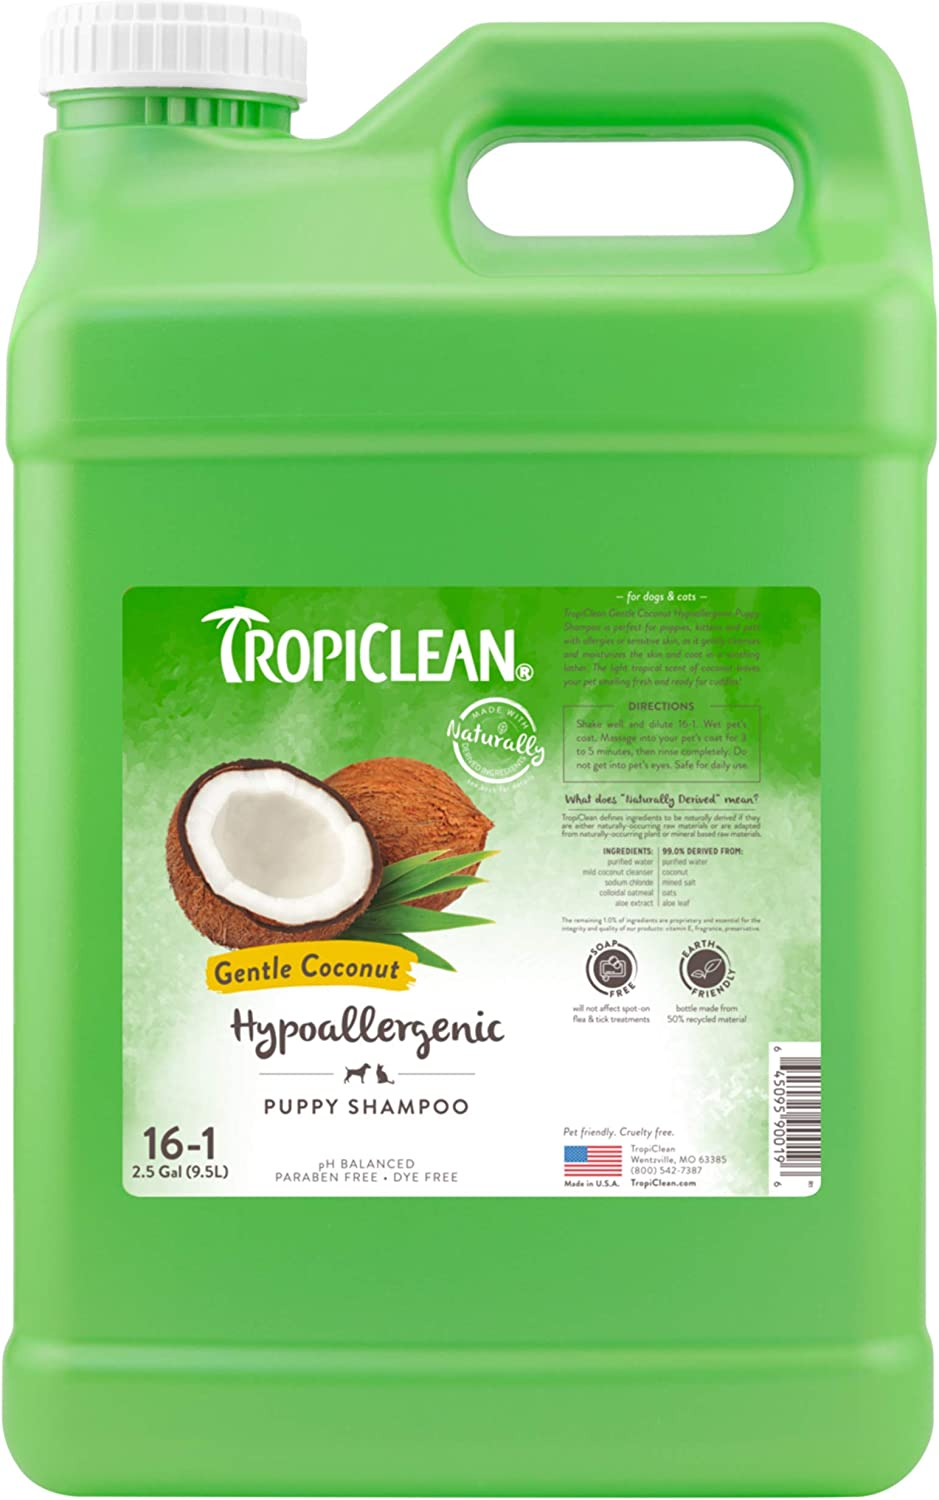 TropiClean Shampoos for SEAL limited New product! New type product Pets Made in USA Derived Naturally - In